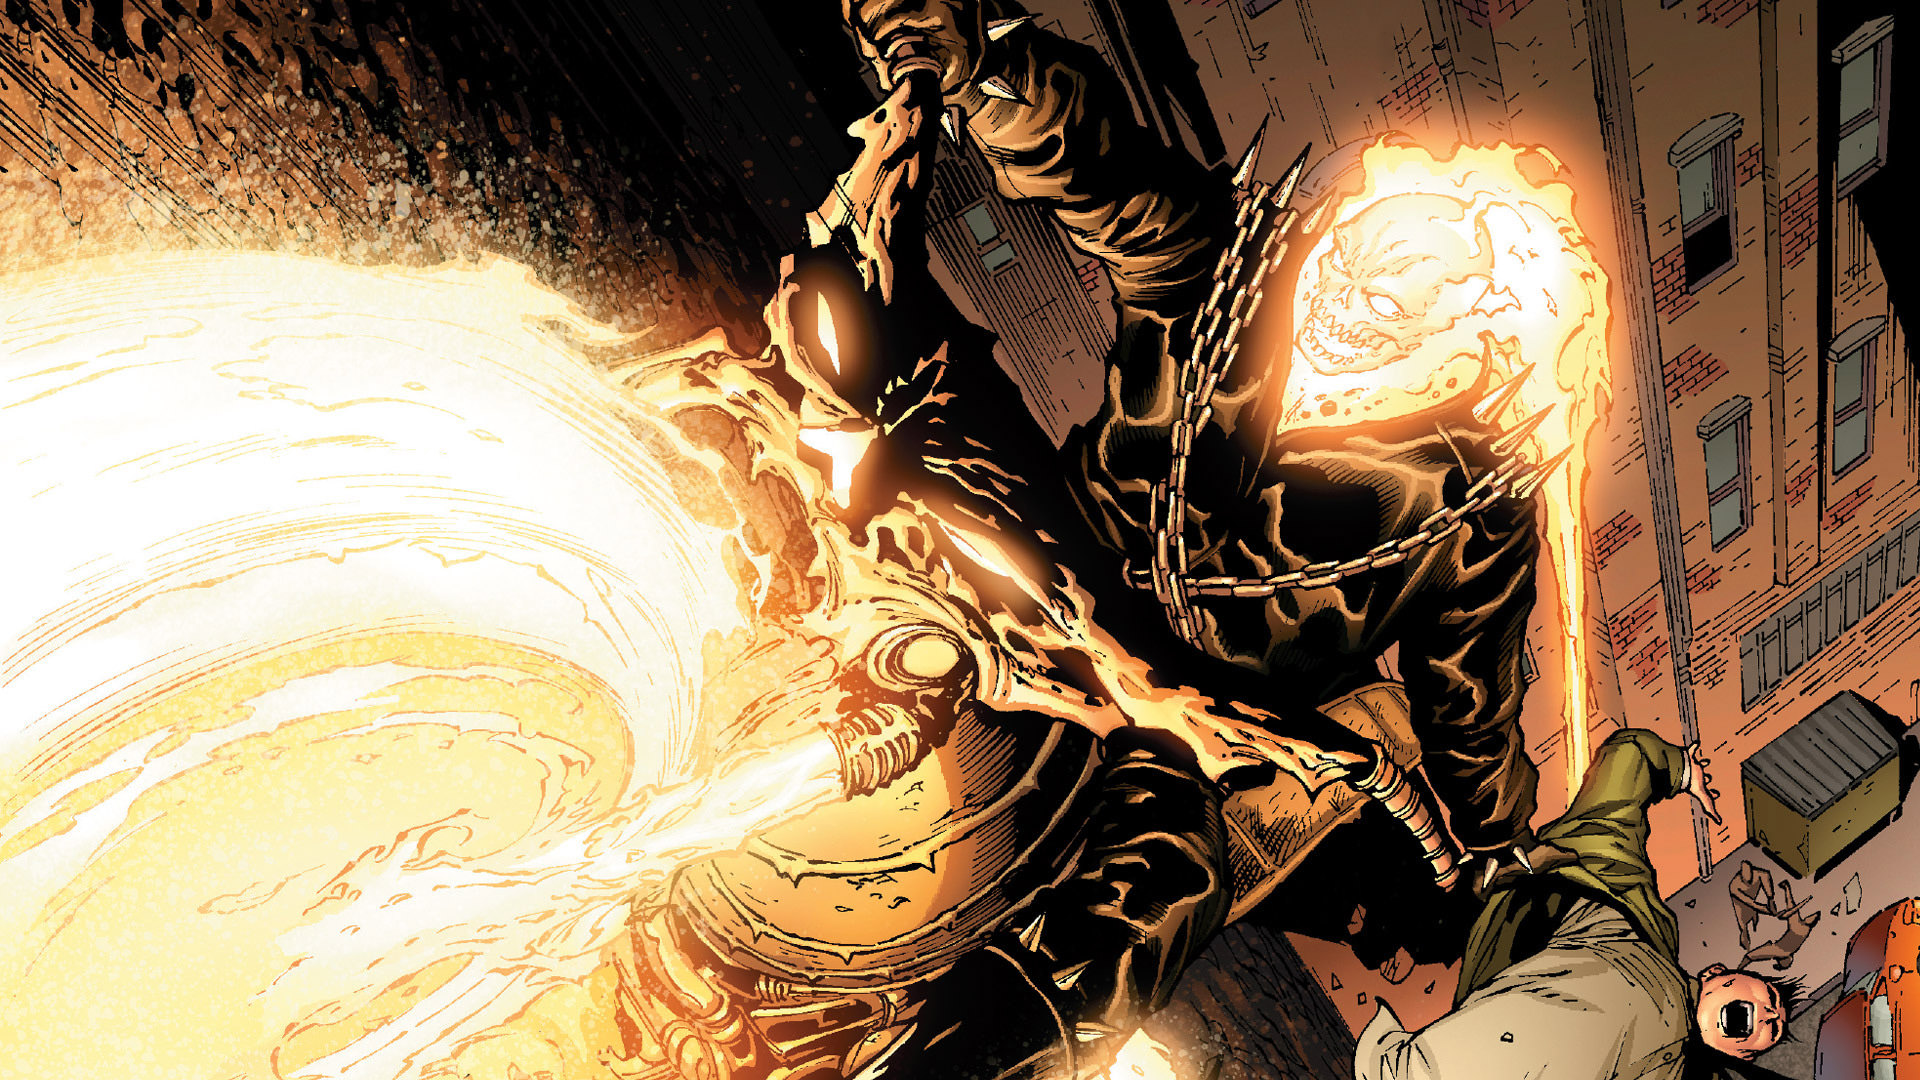 Ghost Rider scaring a young man.jpg